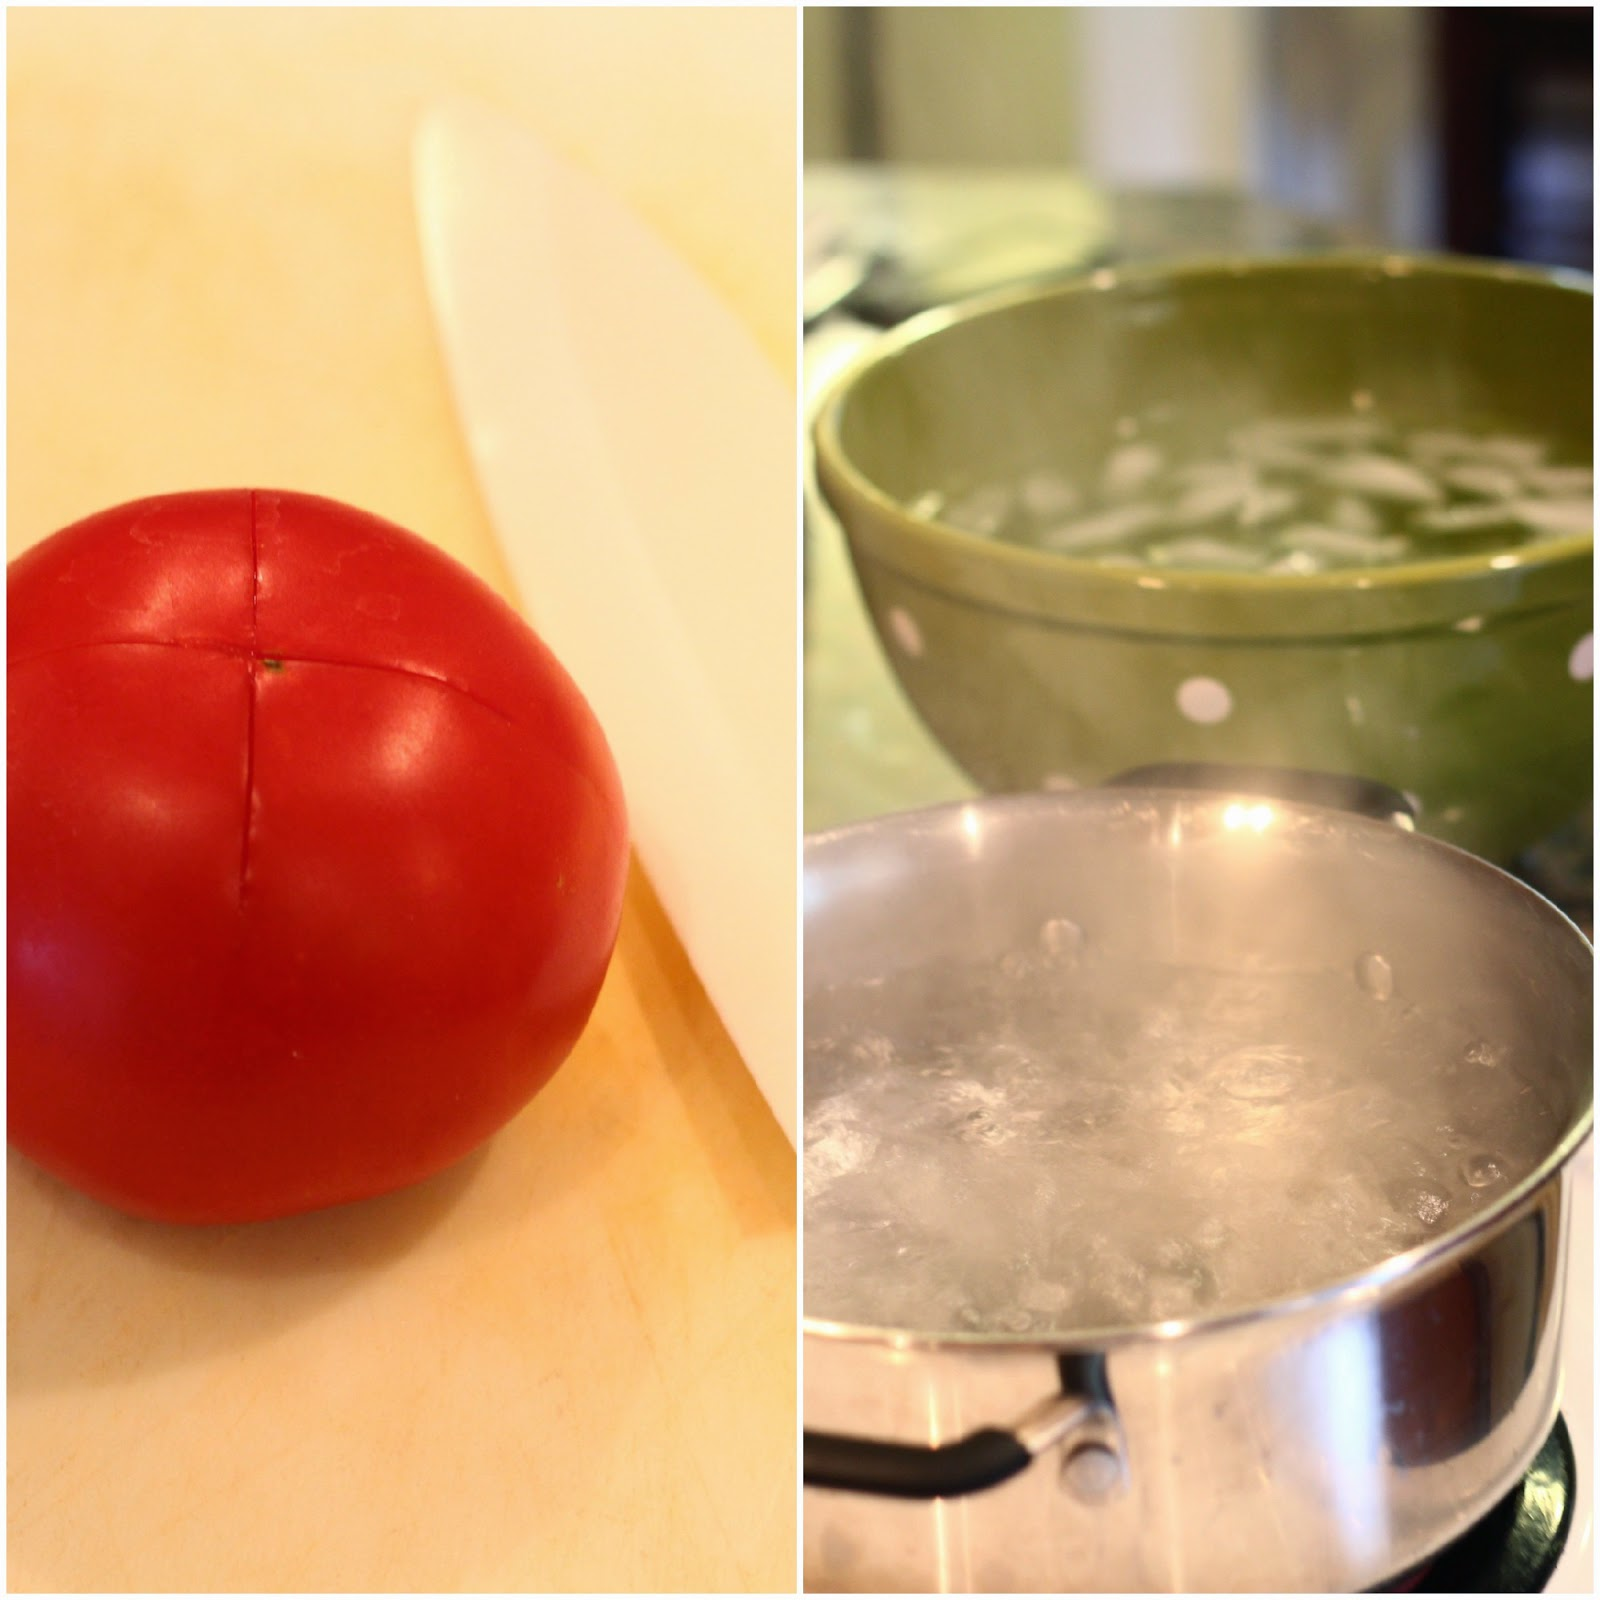 homemade tomato sauce, fresh from homegrown tomatoes, recipe, diy, can, fresh, tomato, ingredients, skin, dessed, heirloom